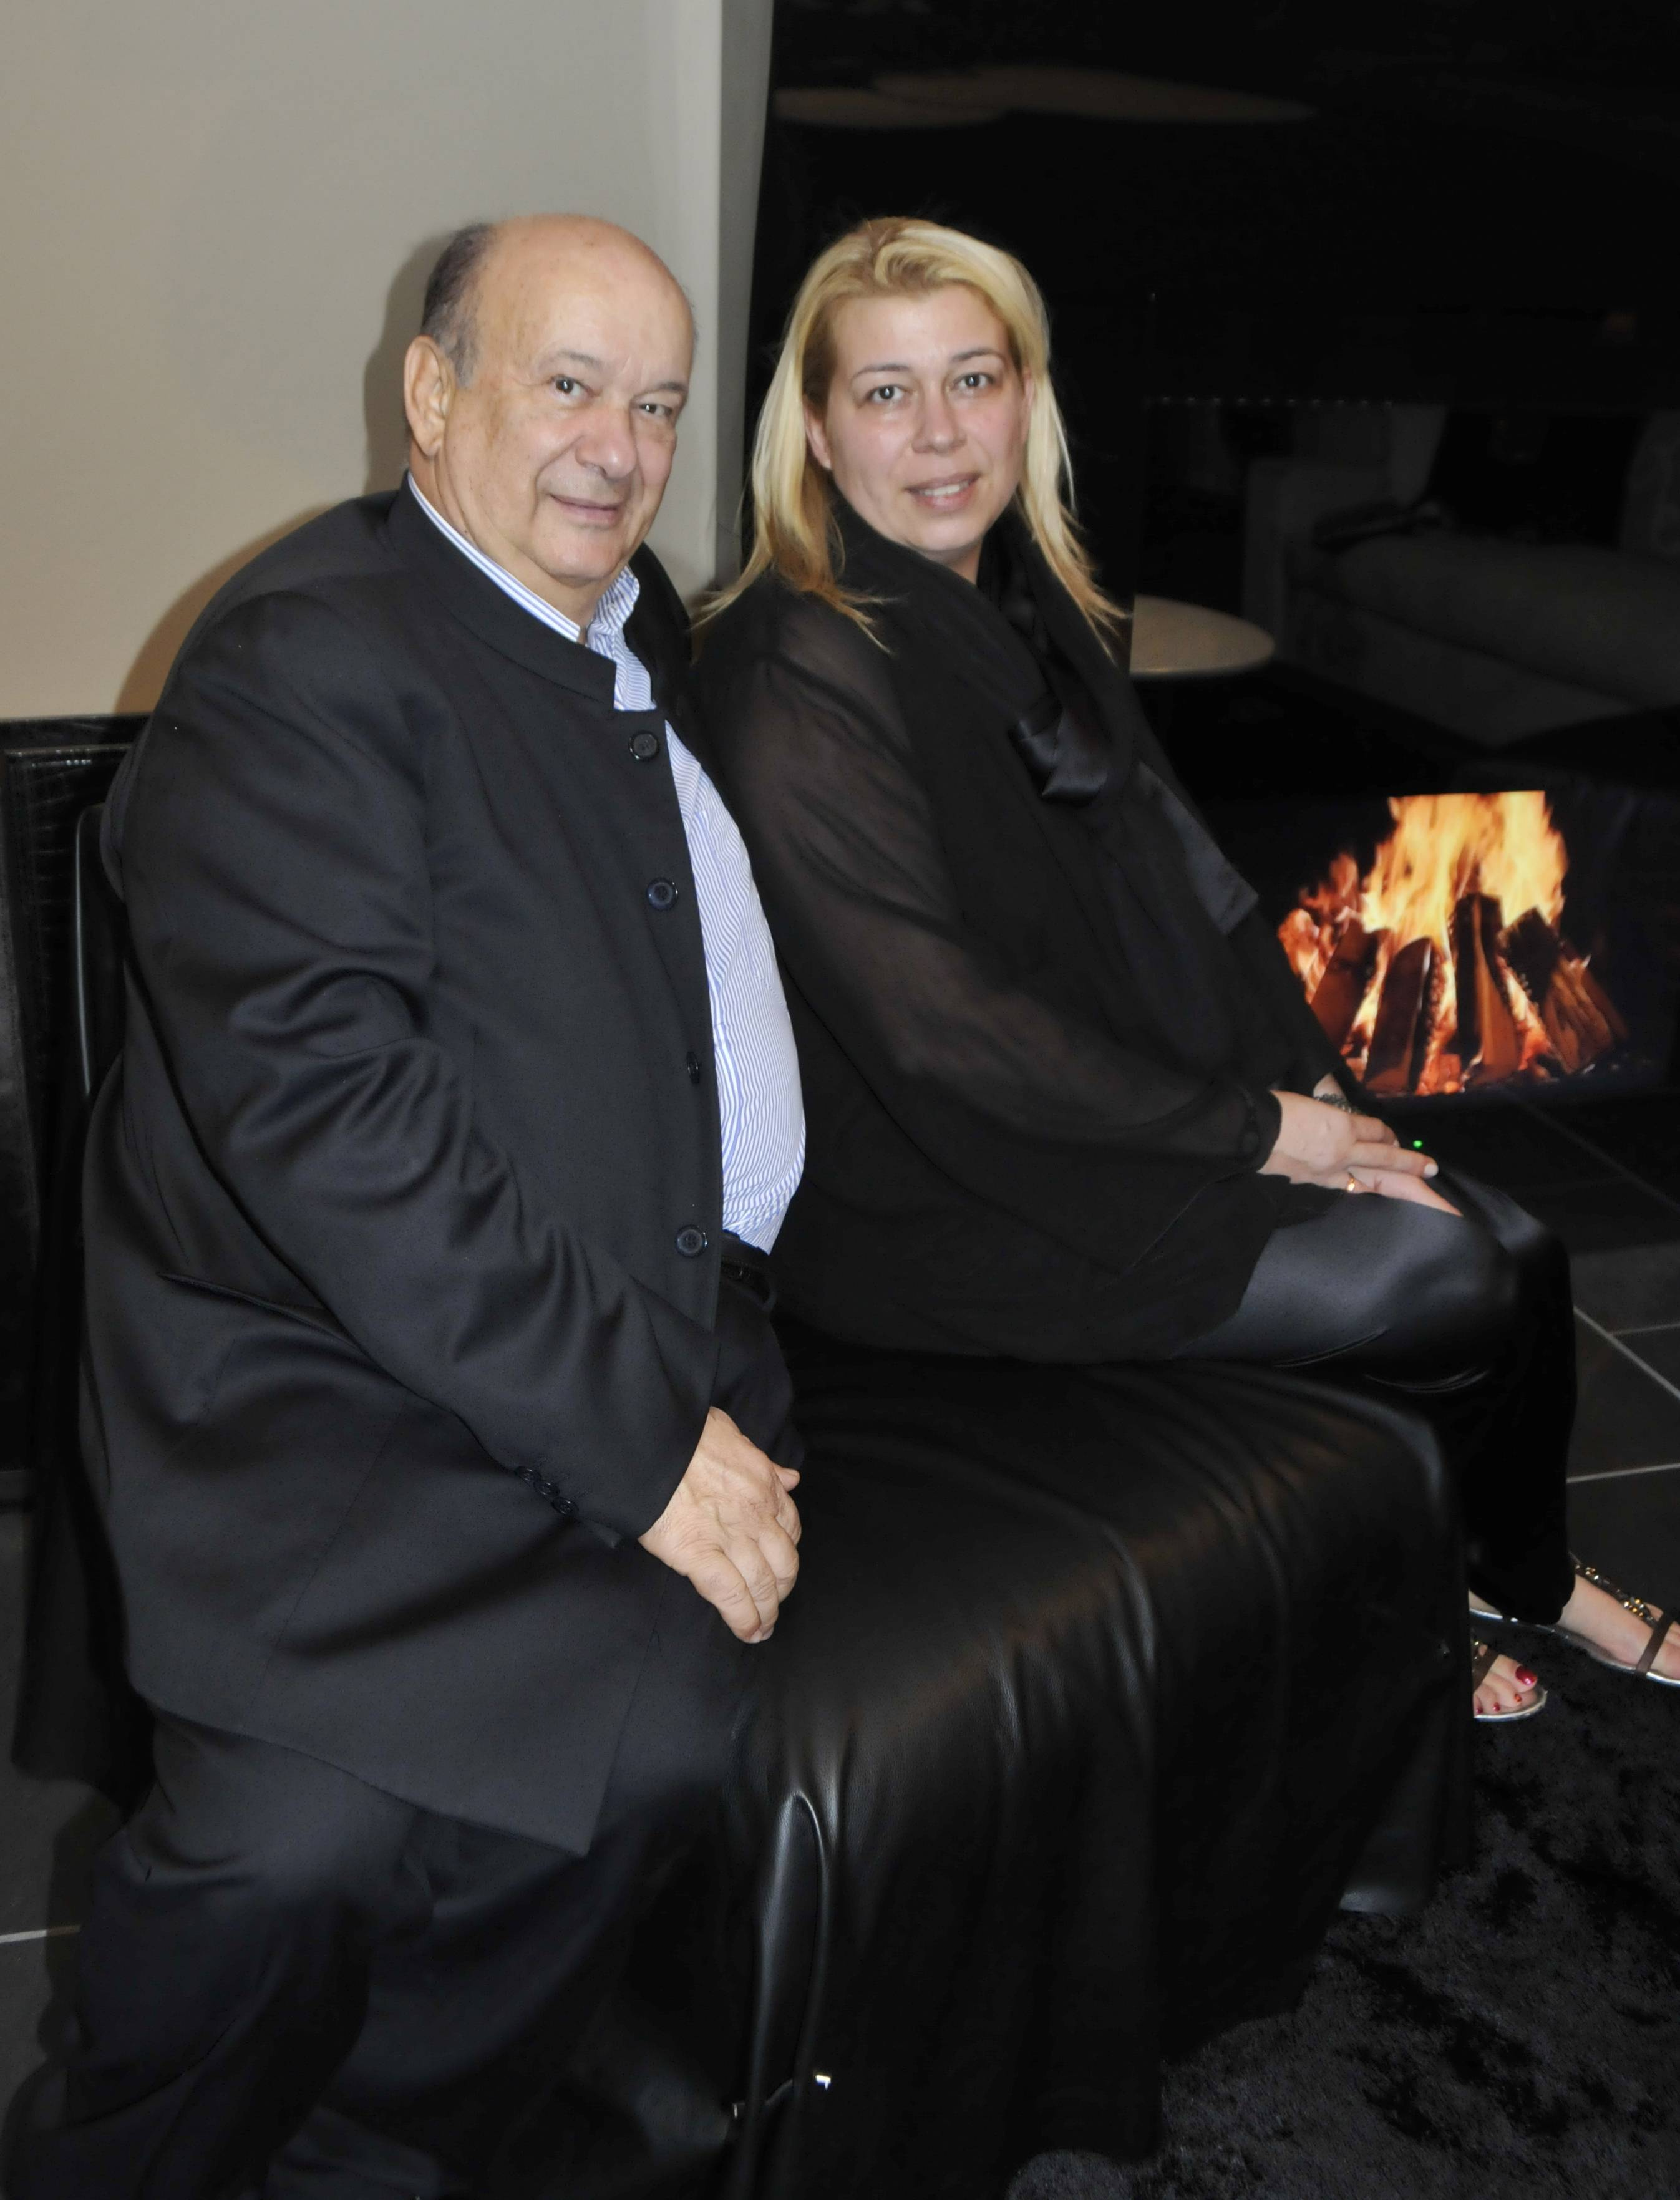 Club House Italia President Alberto Vignatelli and daughter, Rafaella